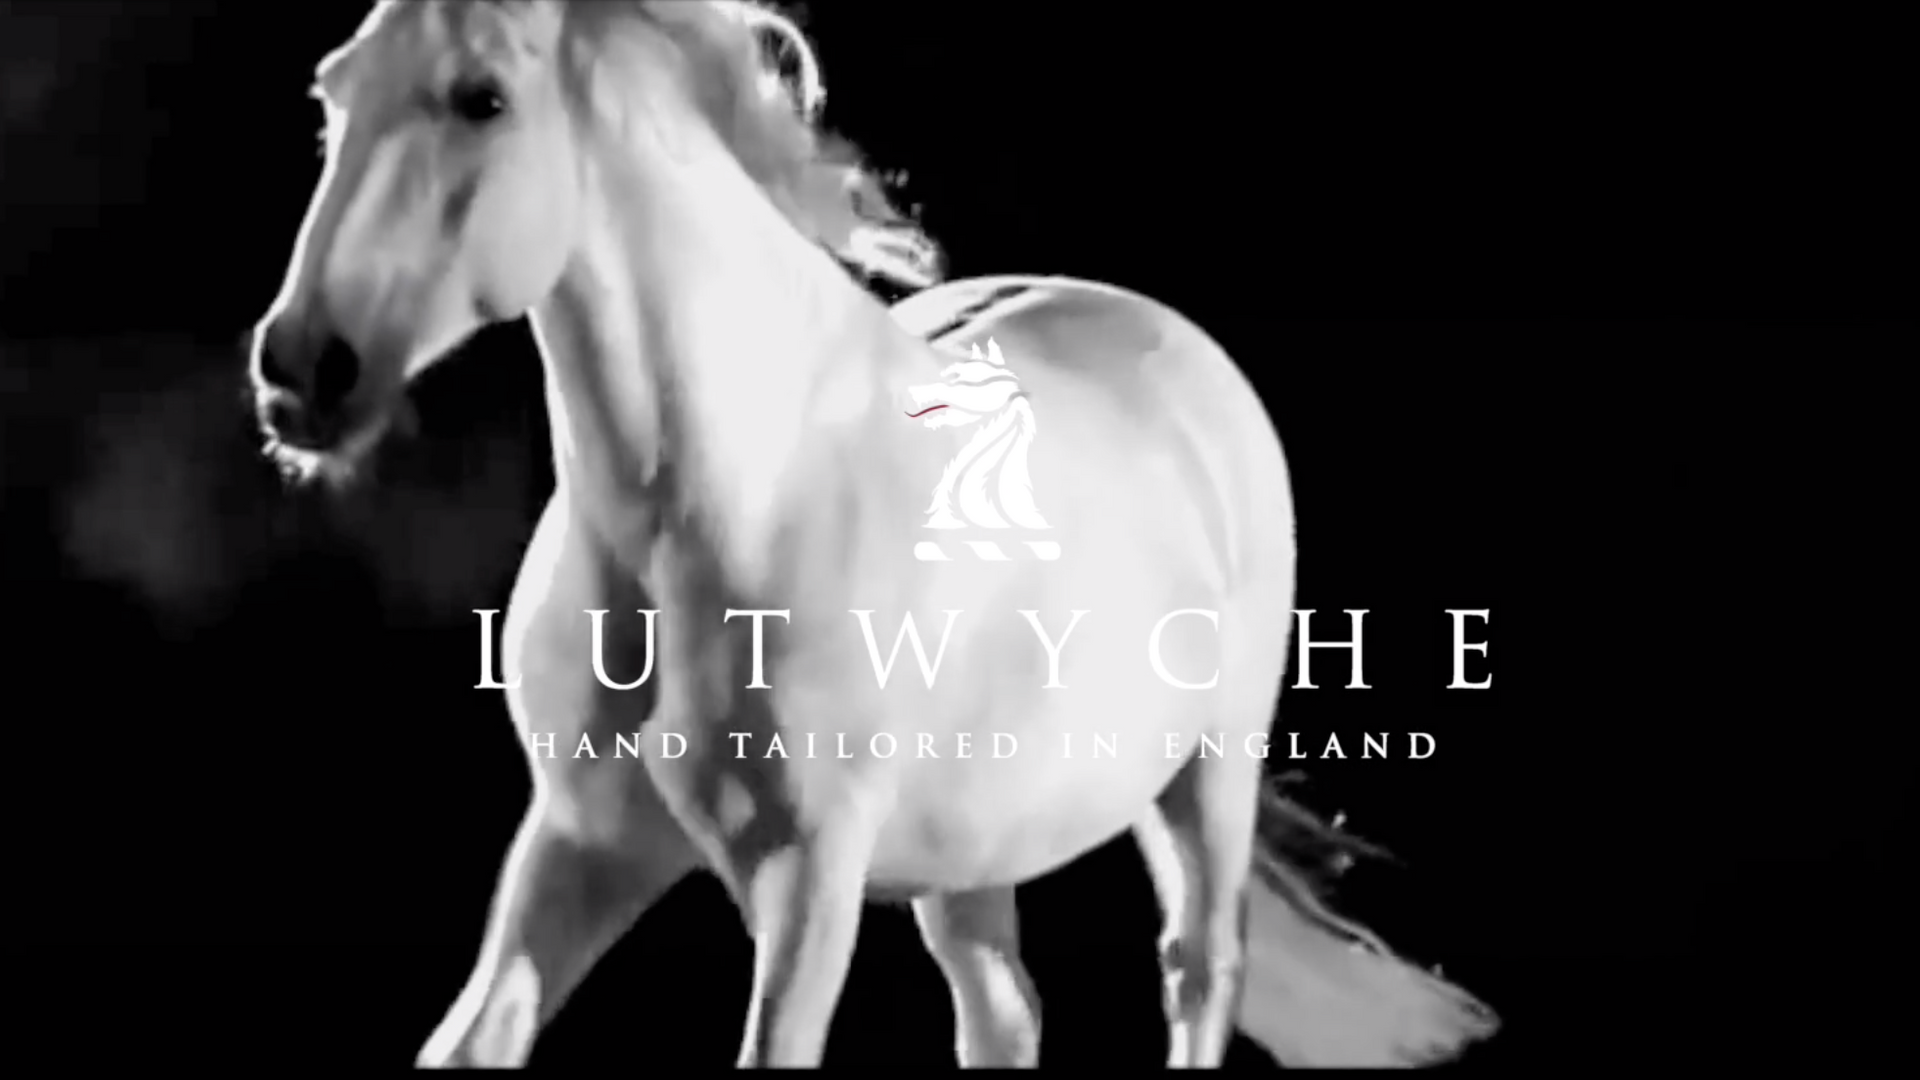 LUTWYCHE Men's tailoring.mp4